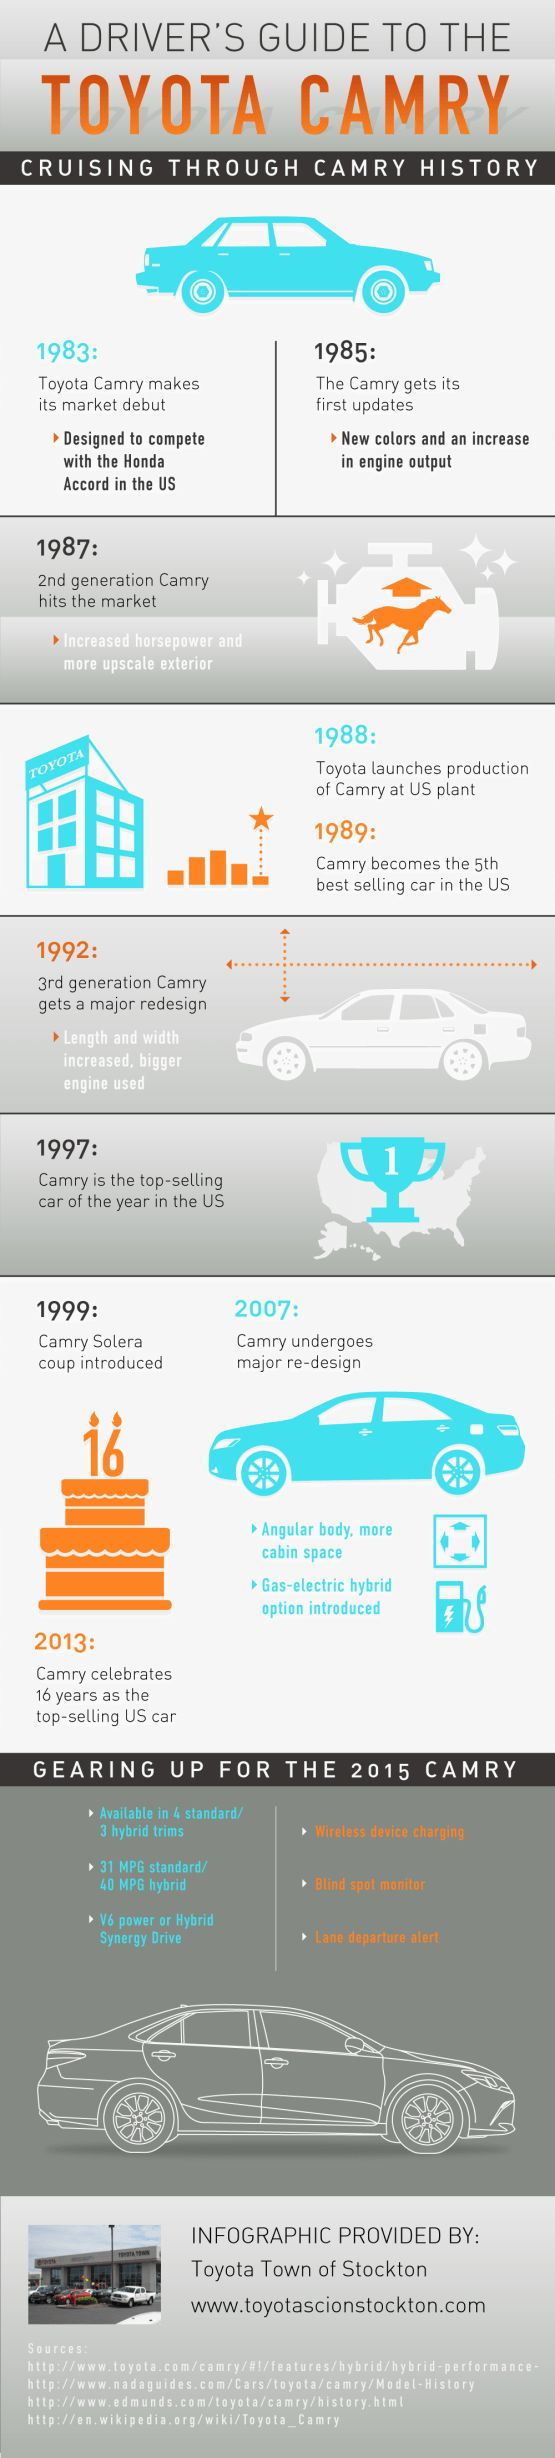 Calling all toyota fans the camry was named the top selling car of the year in the us in click over to this infographic from a toyota dealership in